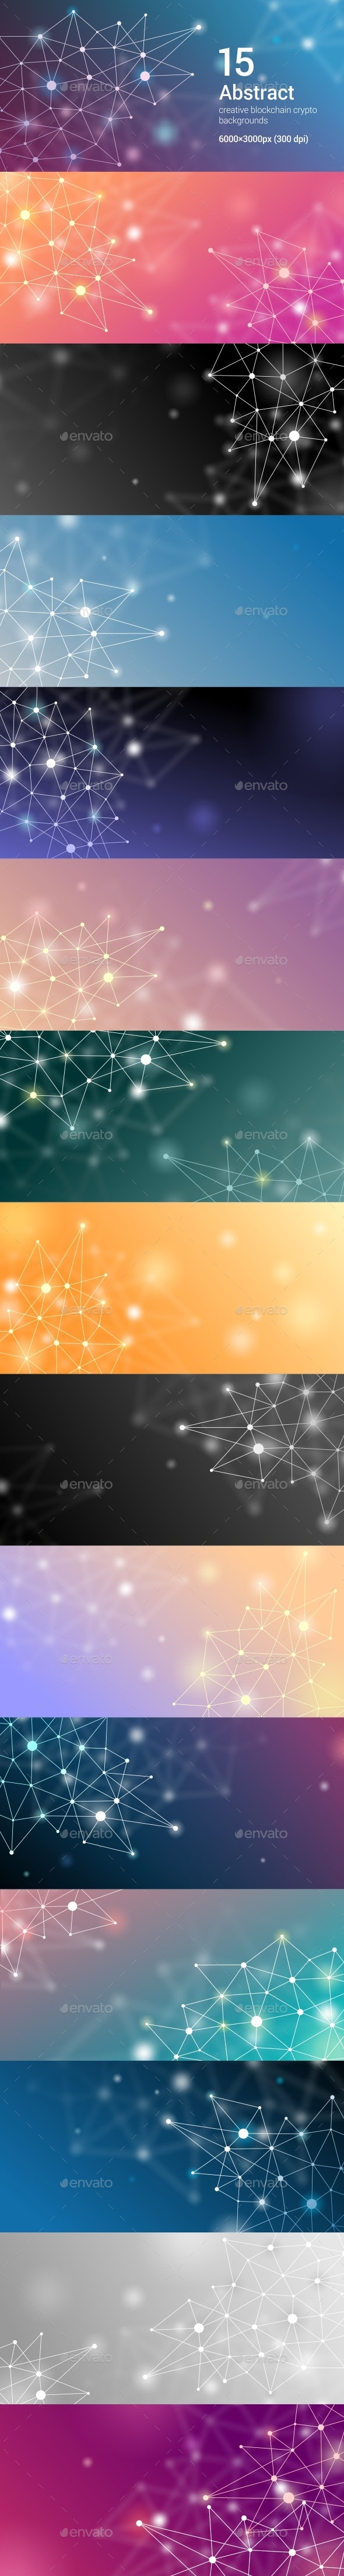 15 Abstract Futuristic Crypto Blockchain Backgrounds. White Dots and Shapes in Triangles Set 3 - Abstract Backgrounds